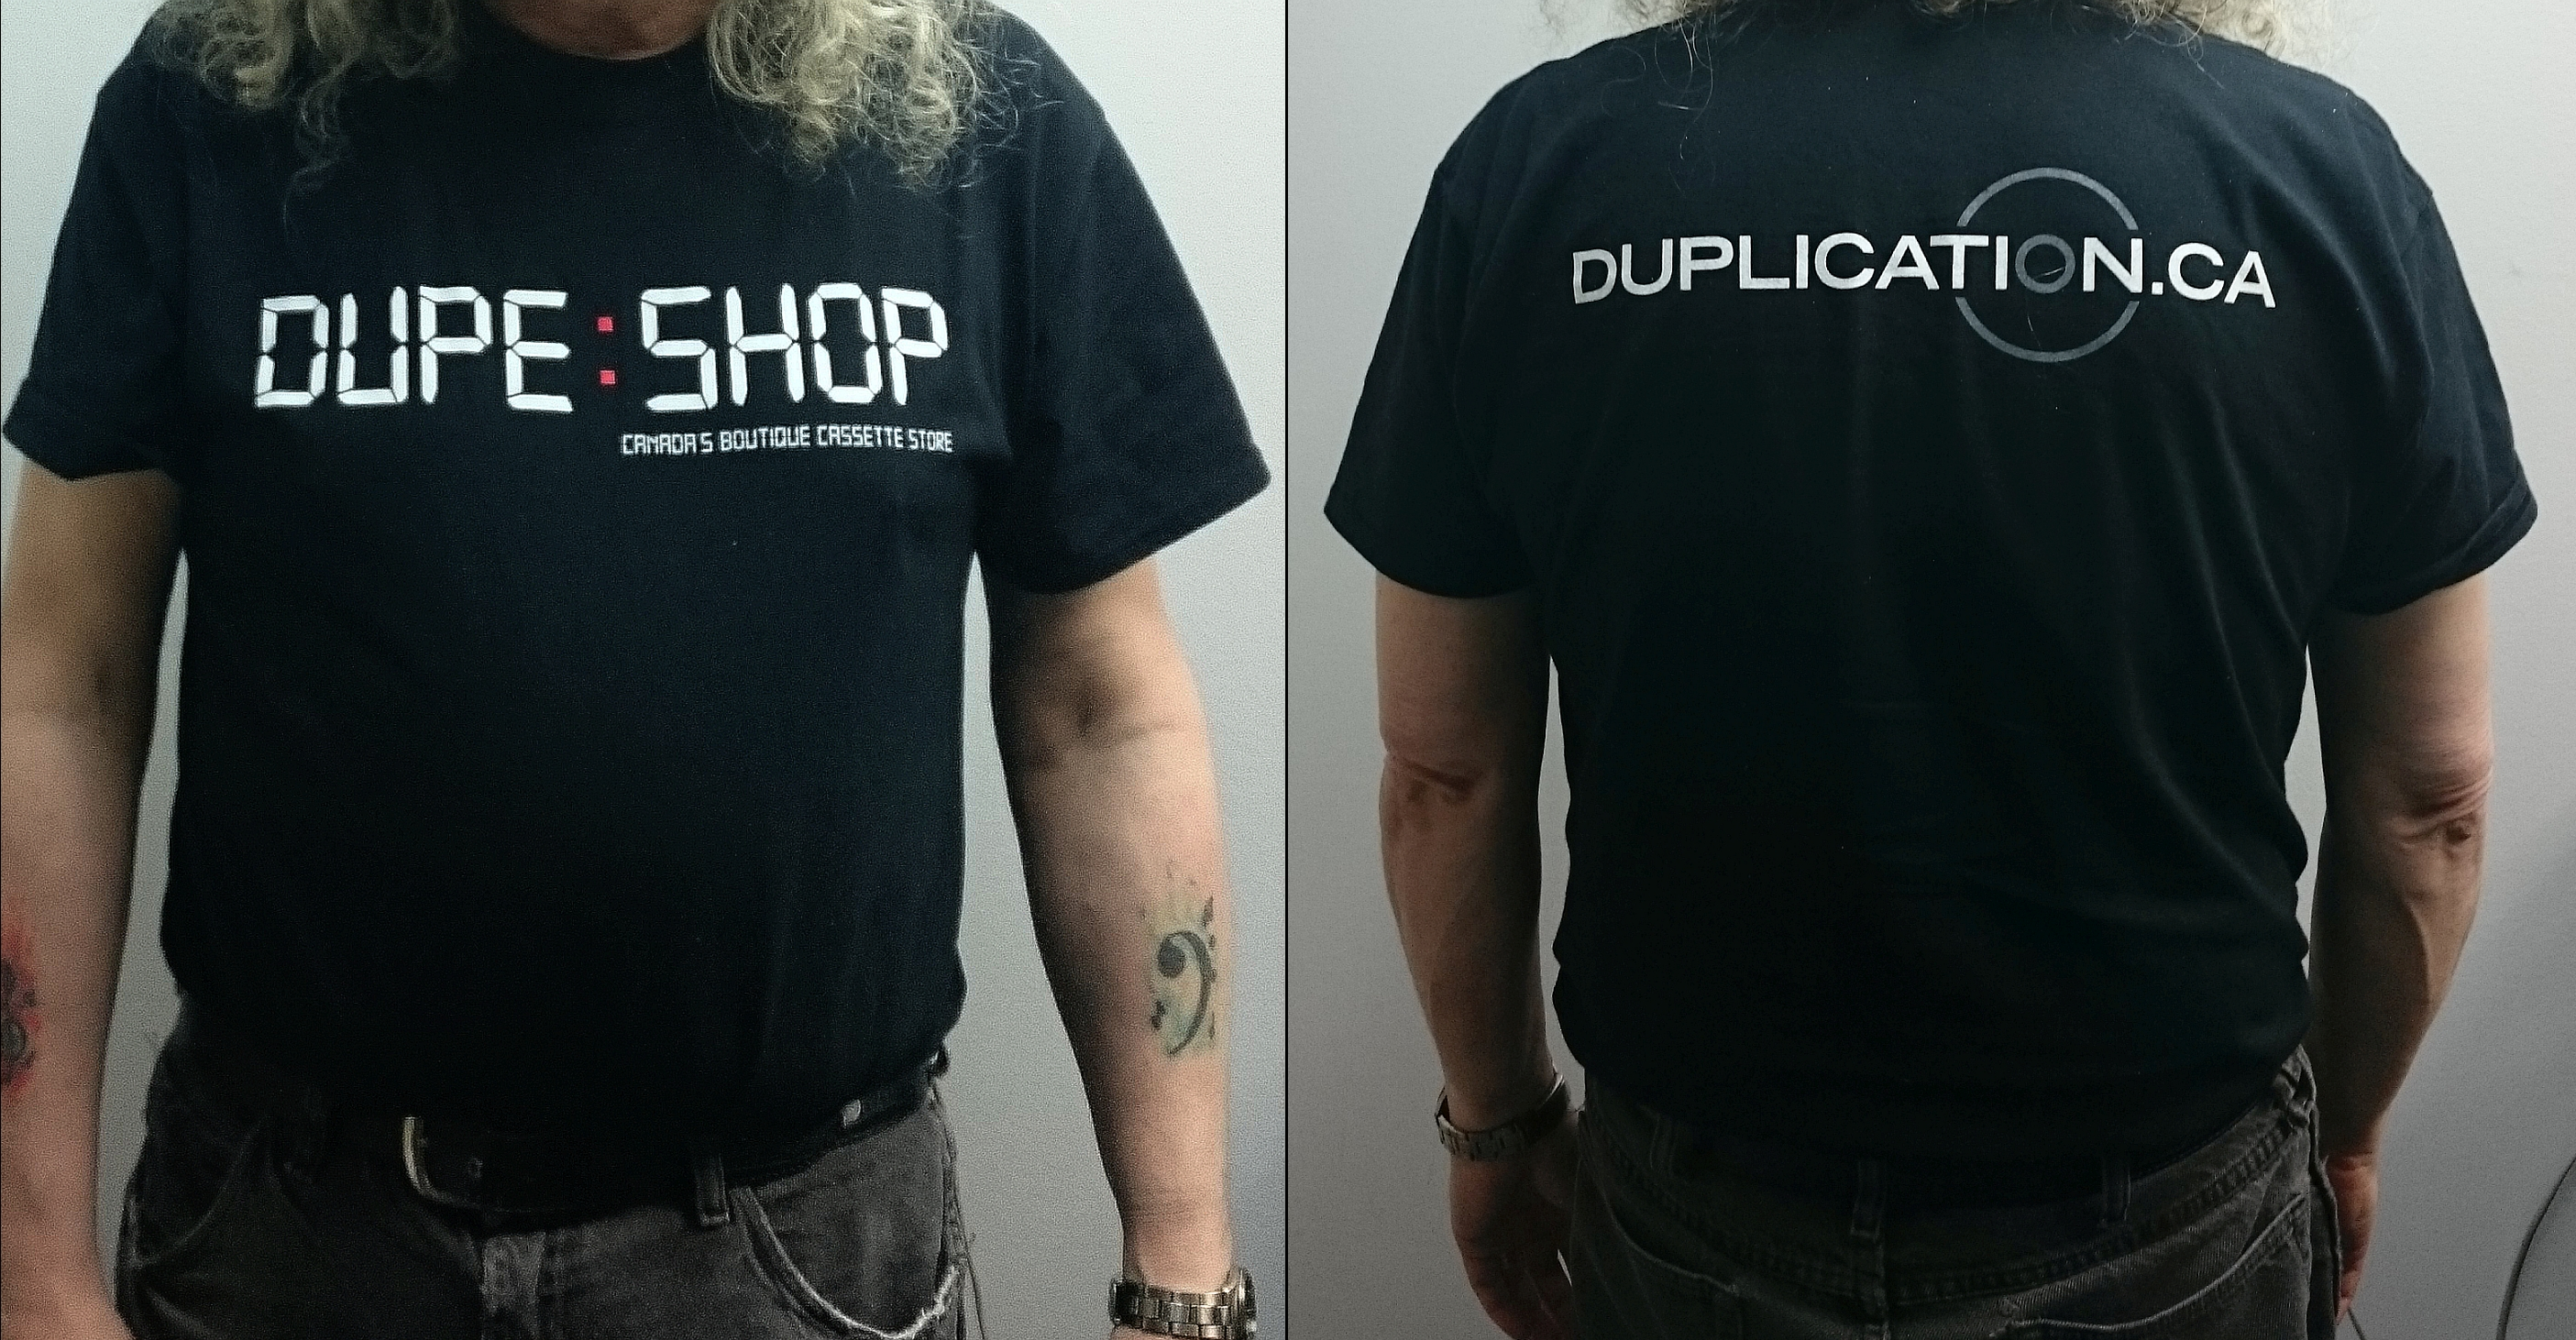 Dupe Shop front / duplication.ca back Tee (Black or Grey)